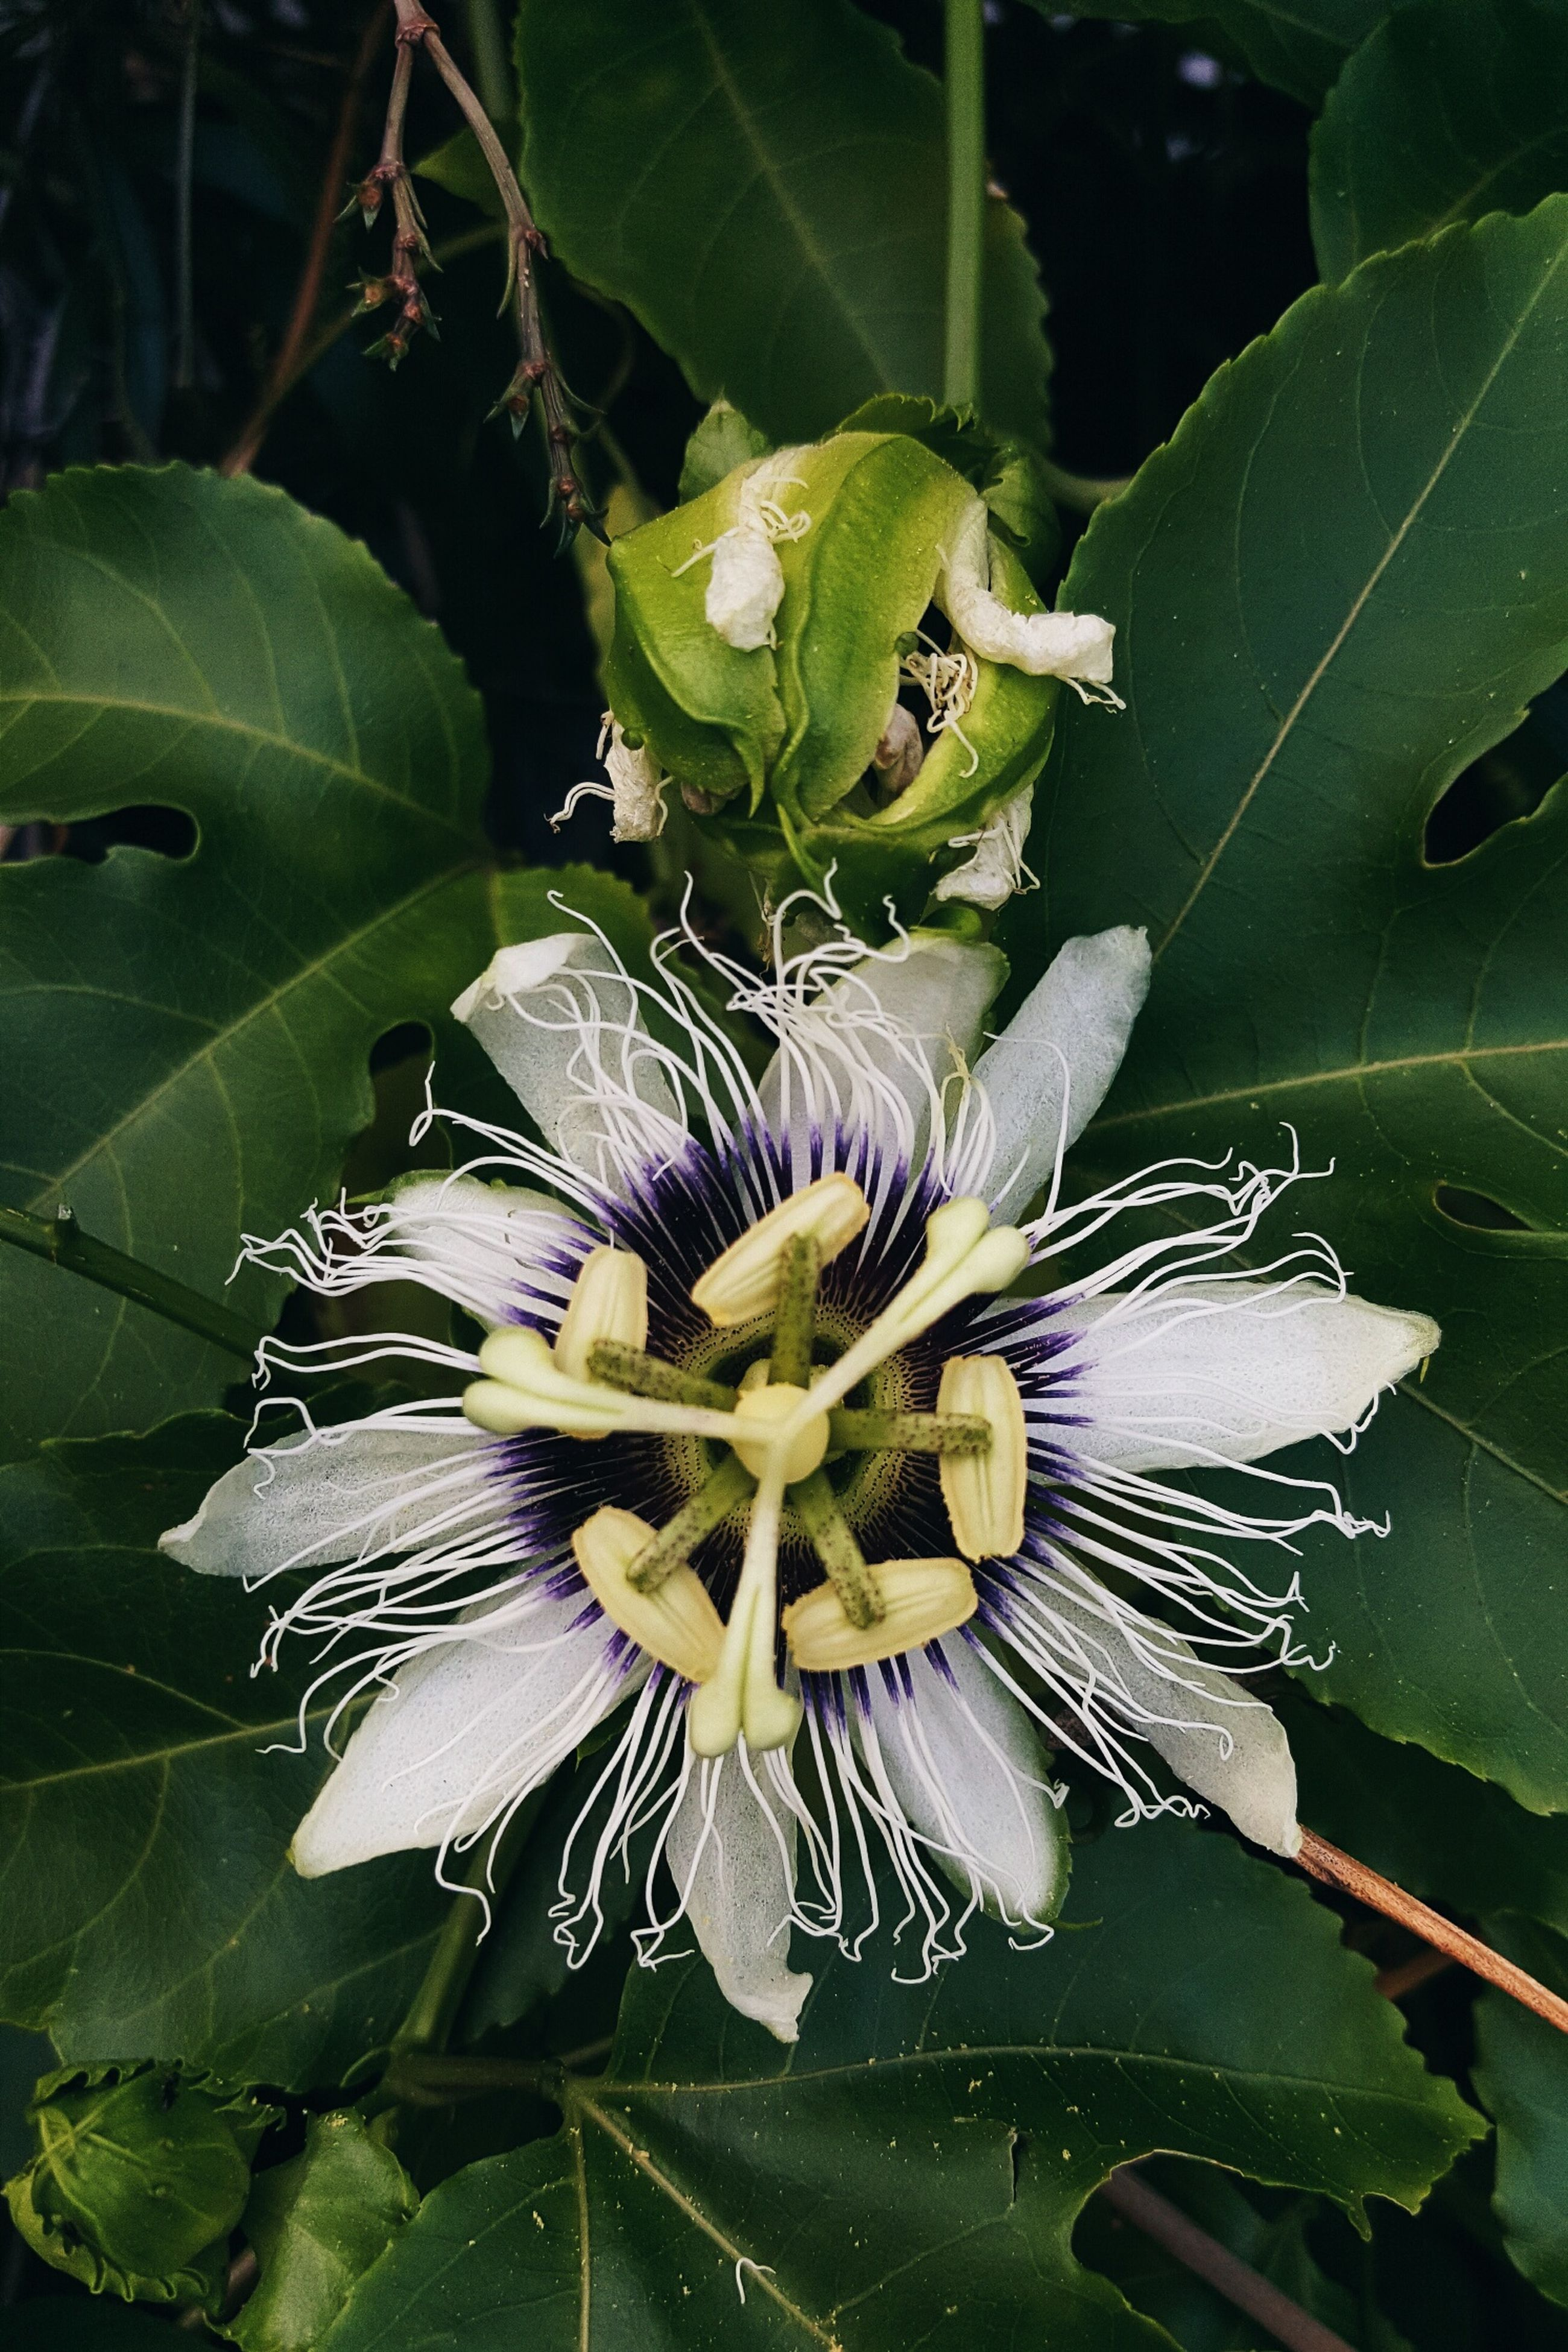 flower, leaf, fragility, petal, beauty in nature, flower head, freshness, growth, plant, nature, day, green color, passion flower, close-up, no people, outdoors, blooming